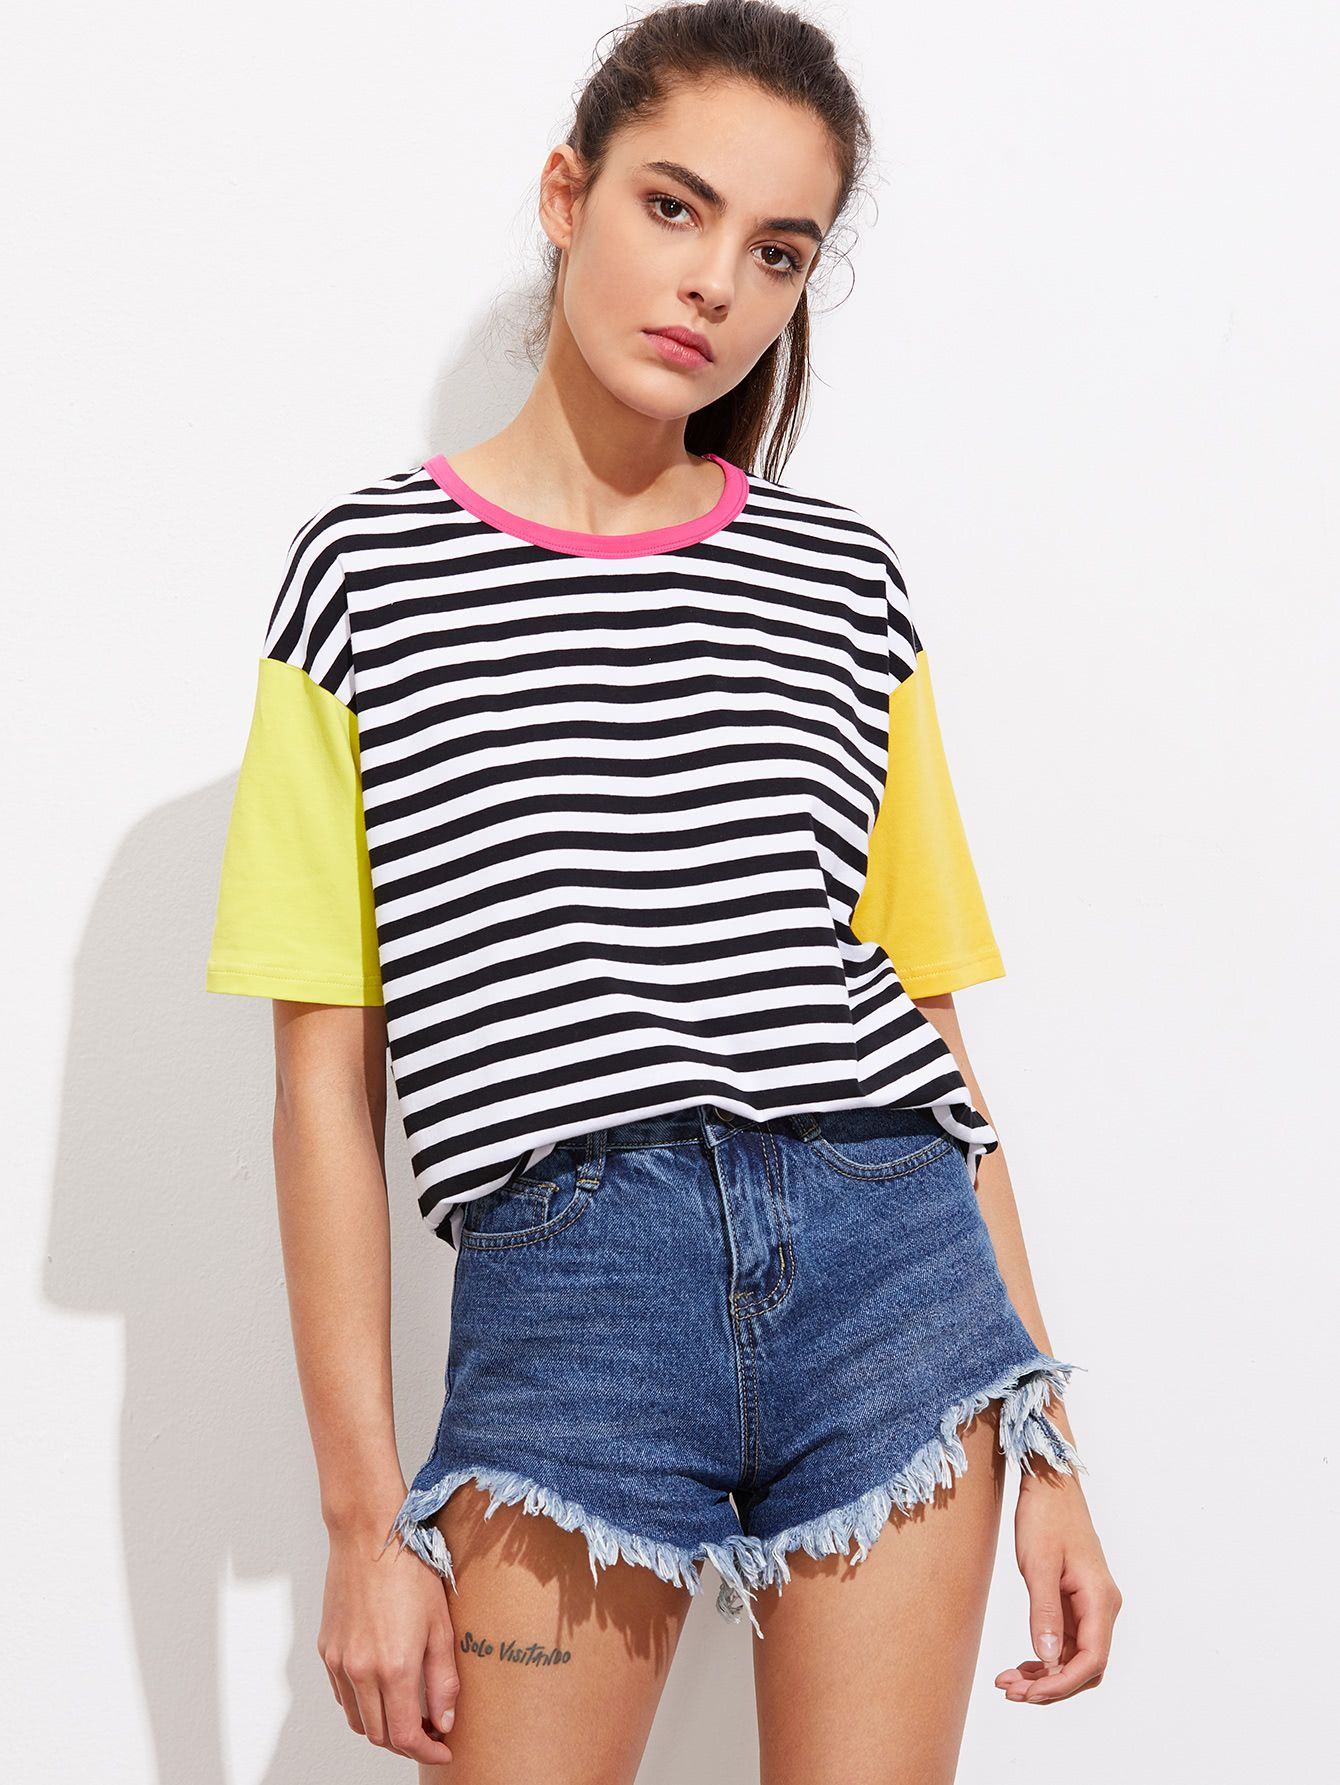 0f9c12dcd5 Shop Contrast Neck And Sleeve Striped Tee online. SheIn offers Contrast  Neck And Sleeve Striped Tee & more to fit your fashionable needs.